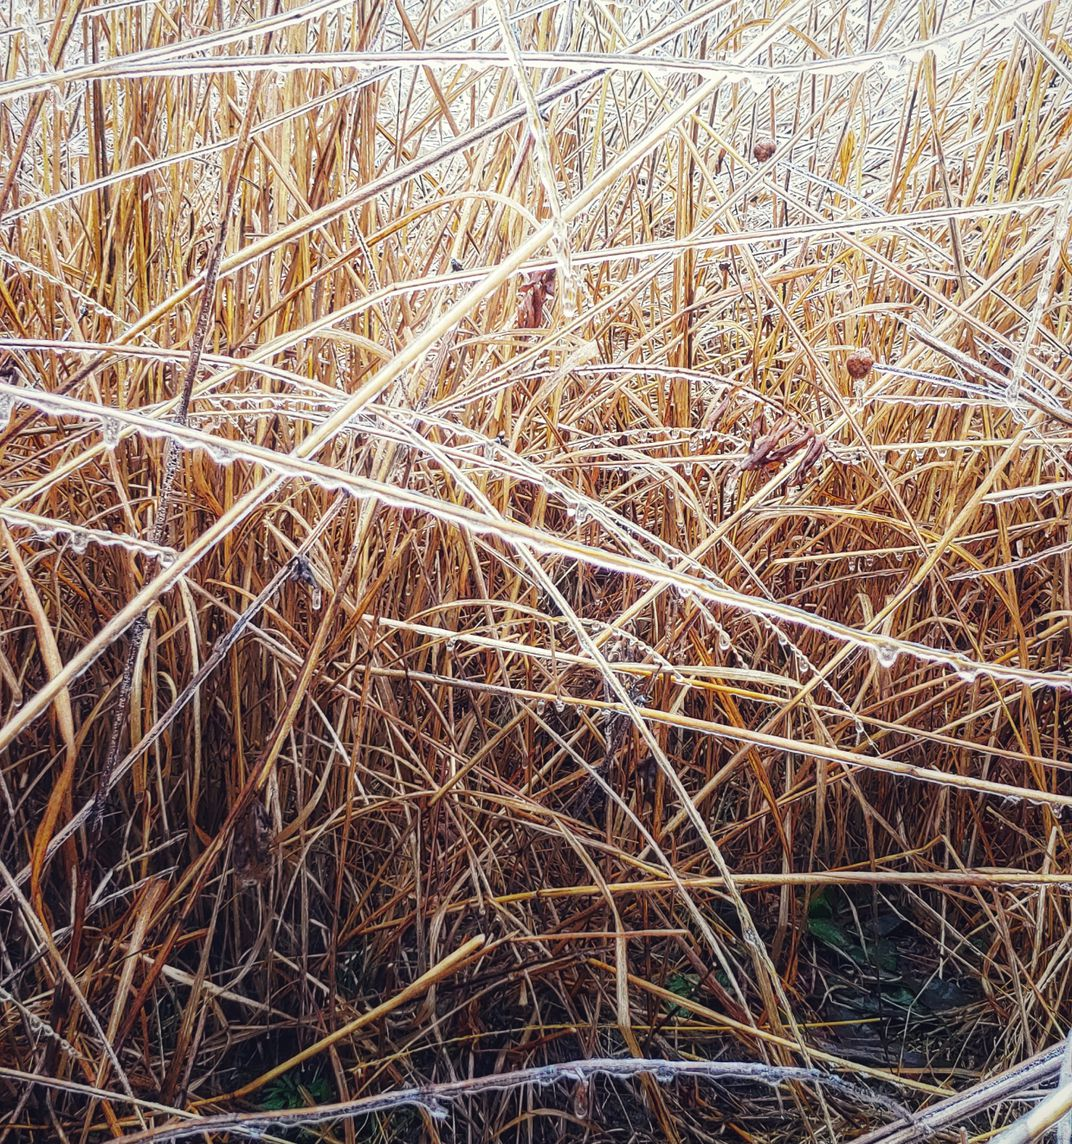 A stand of tall, thin grasses covered in a layer of ice.